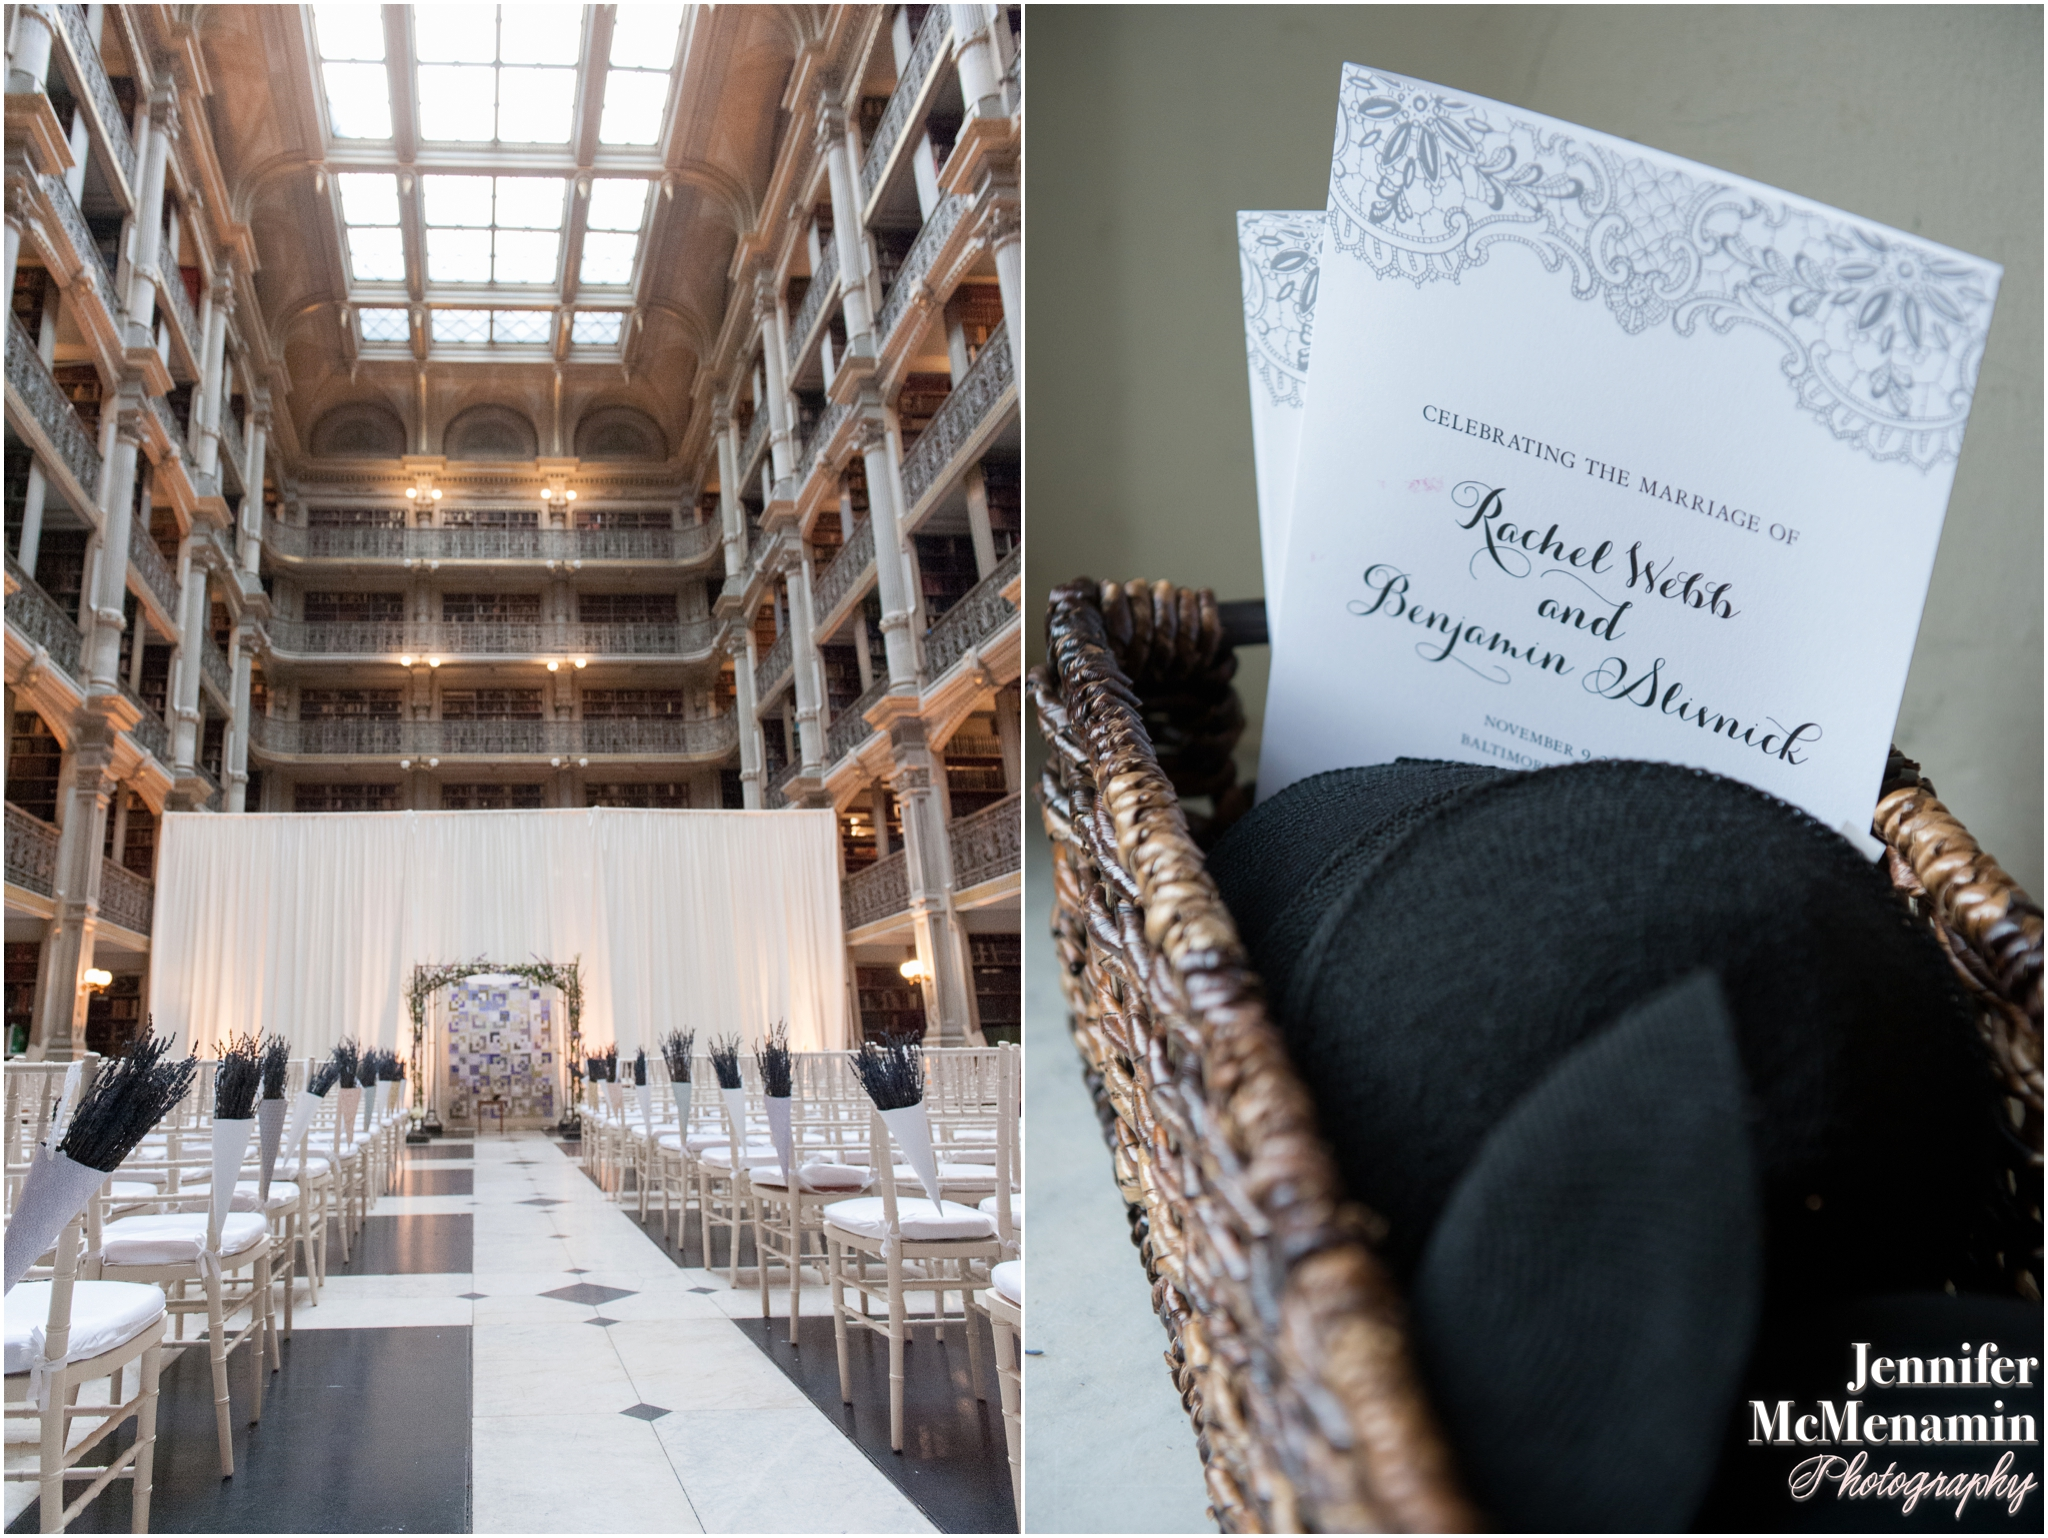 0059-WebbSlivnick_02280-0454_JenniferMcMenaminPhotography_George-Peabody-Library-wedding_Baltimore-wedding-photography_Baltimore-wedding-photographer